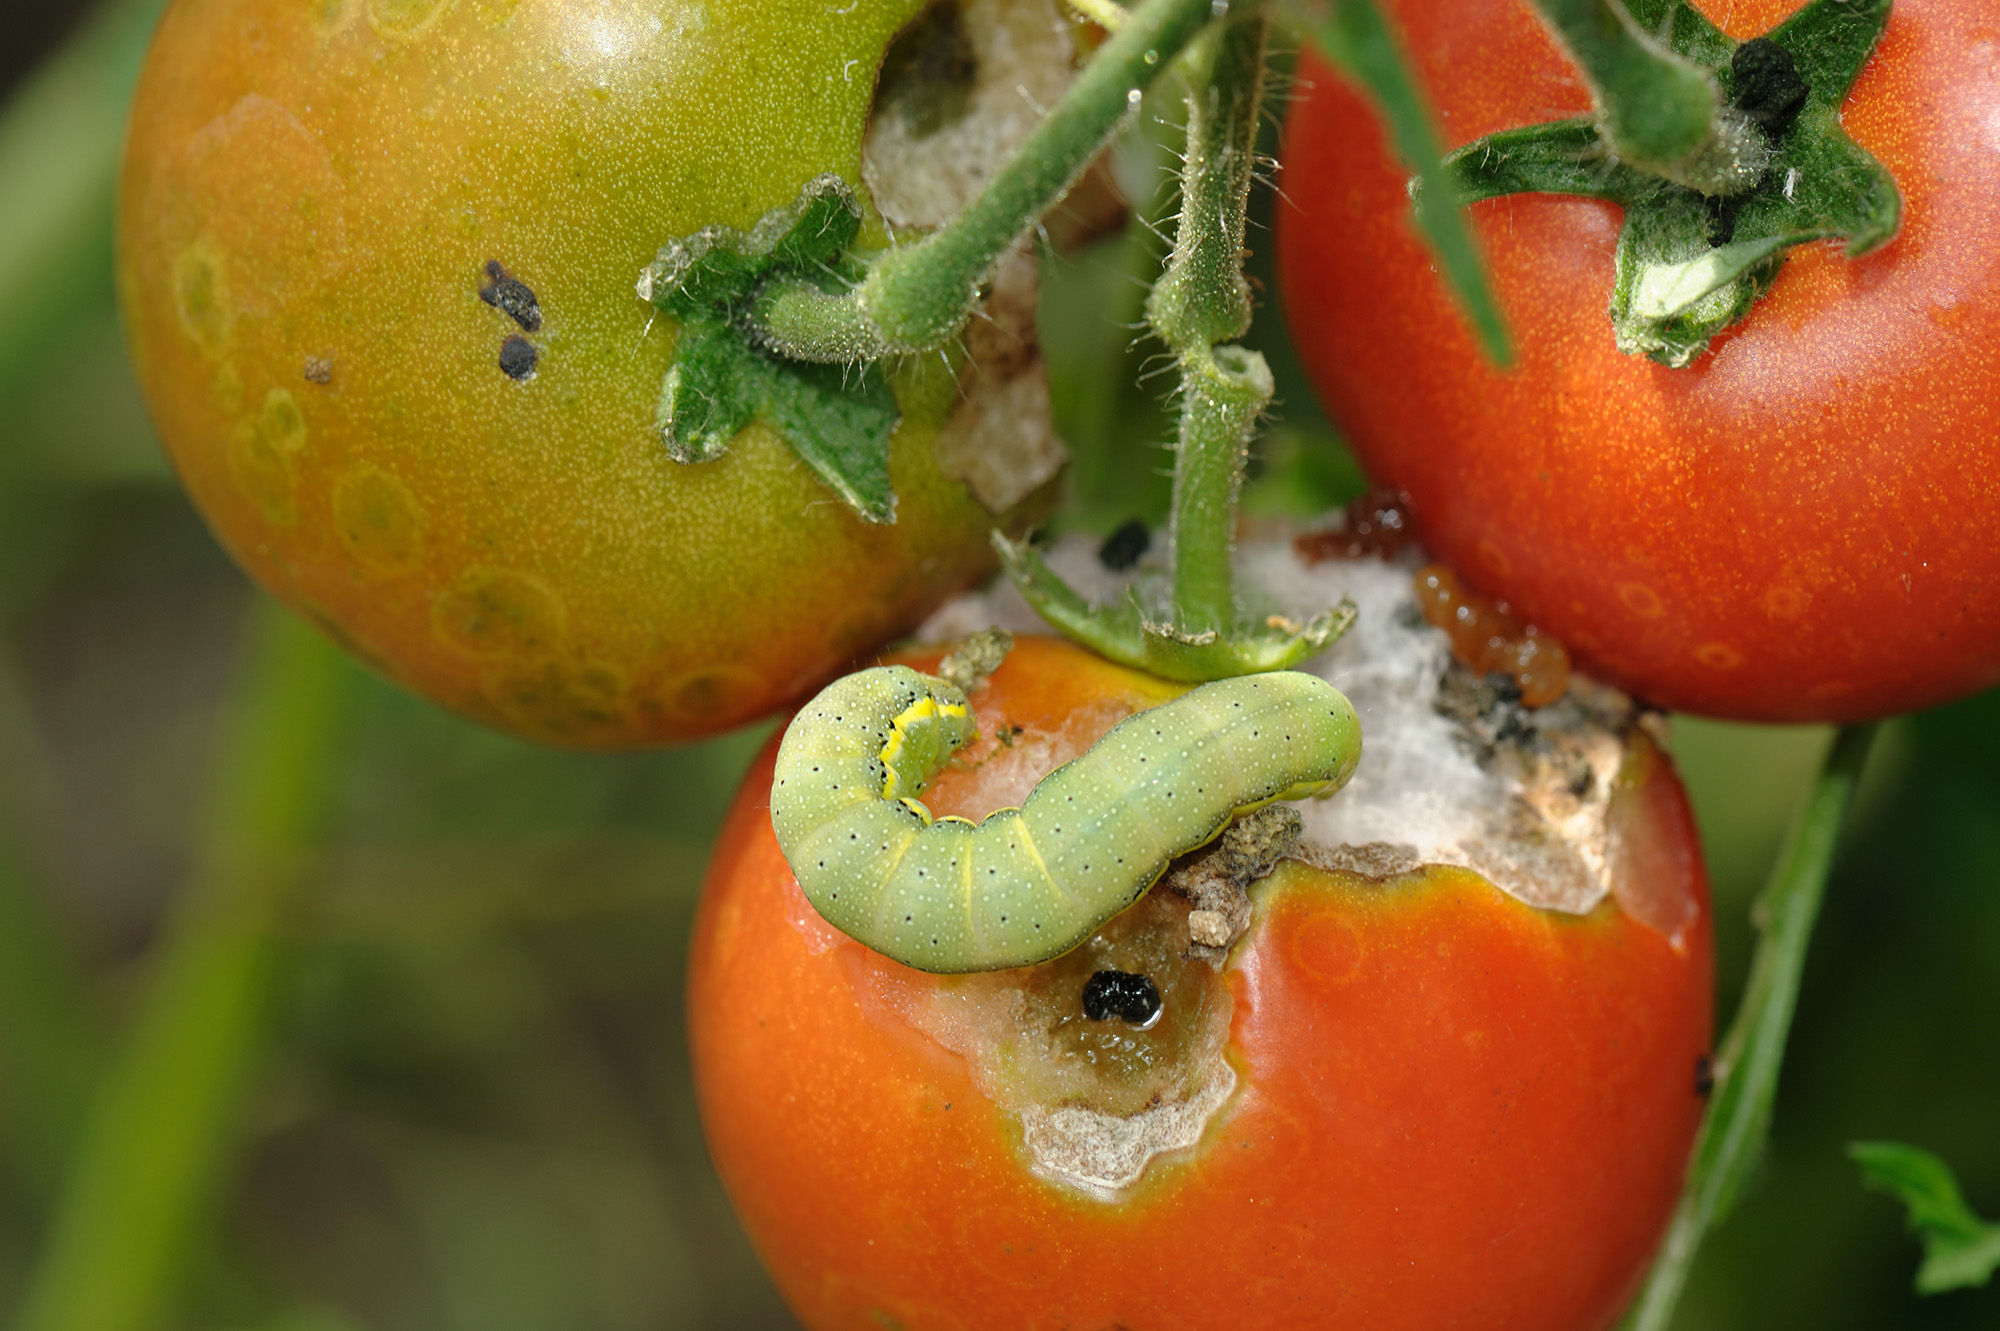 Tomato_moth_BE2NB3.jpg